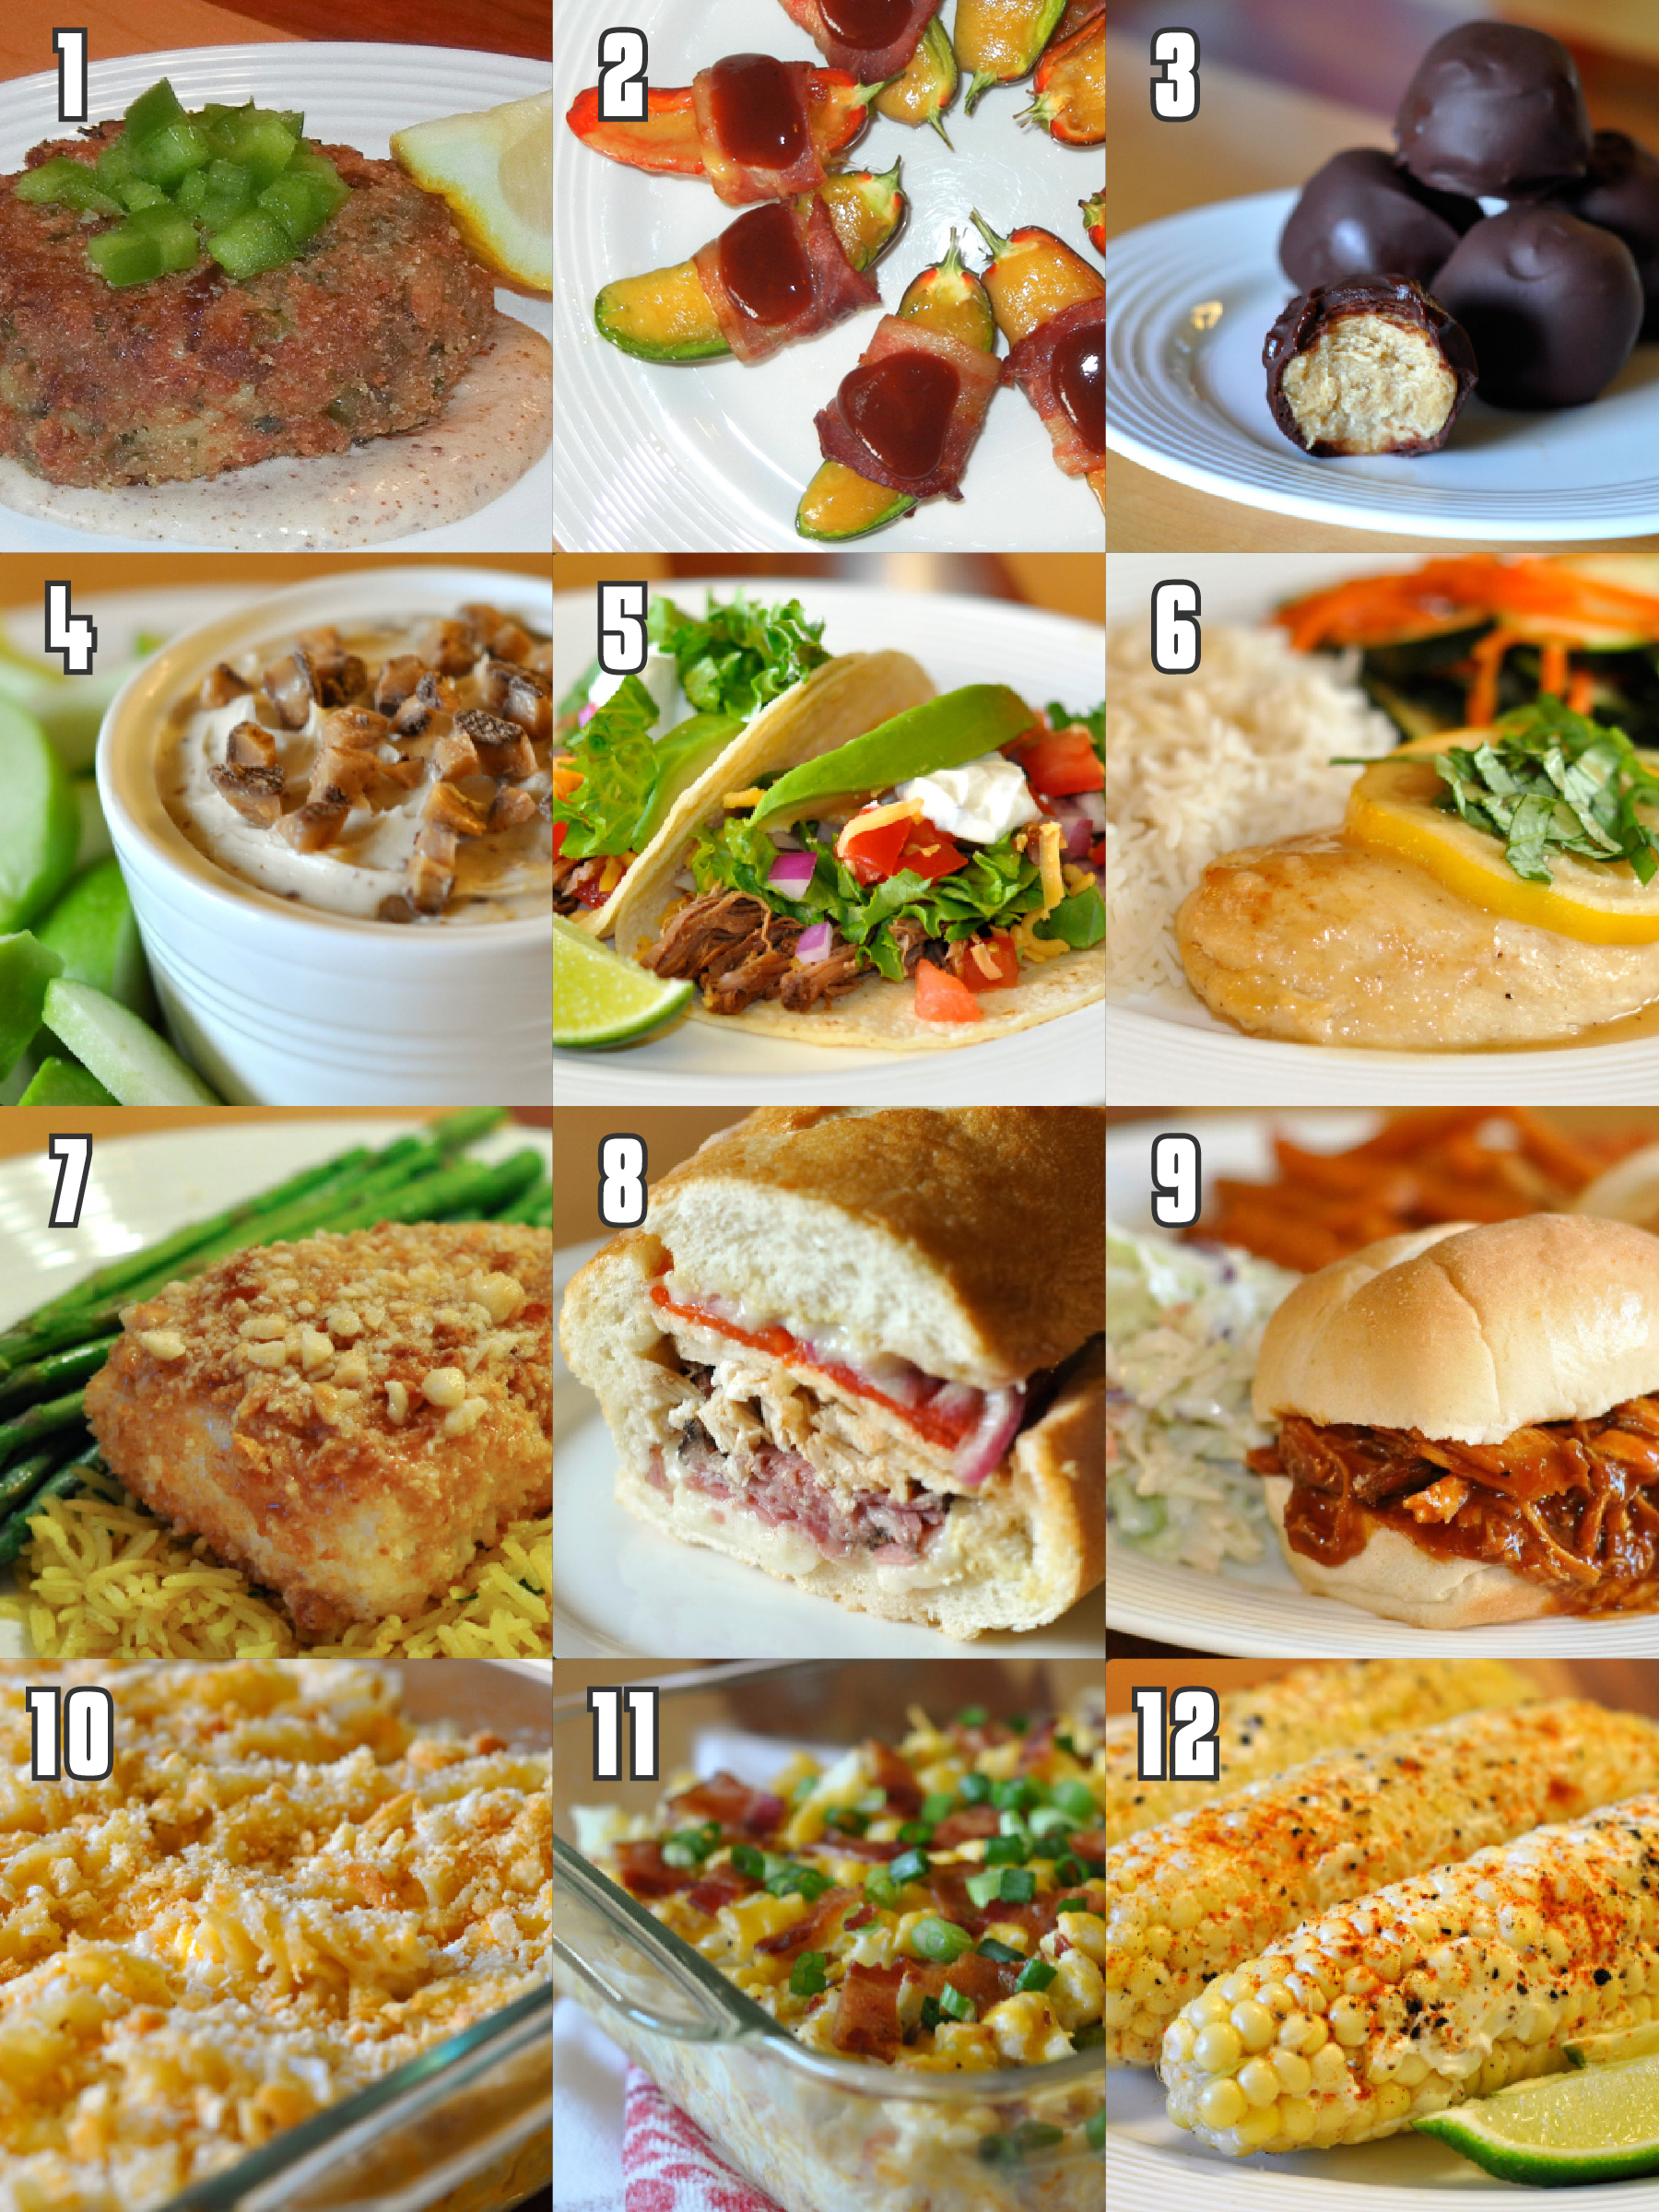 Fathers day meal ideas my hubbys top 12 picks hubbys top 12 picks forumfinder Choice Image